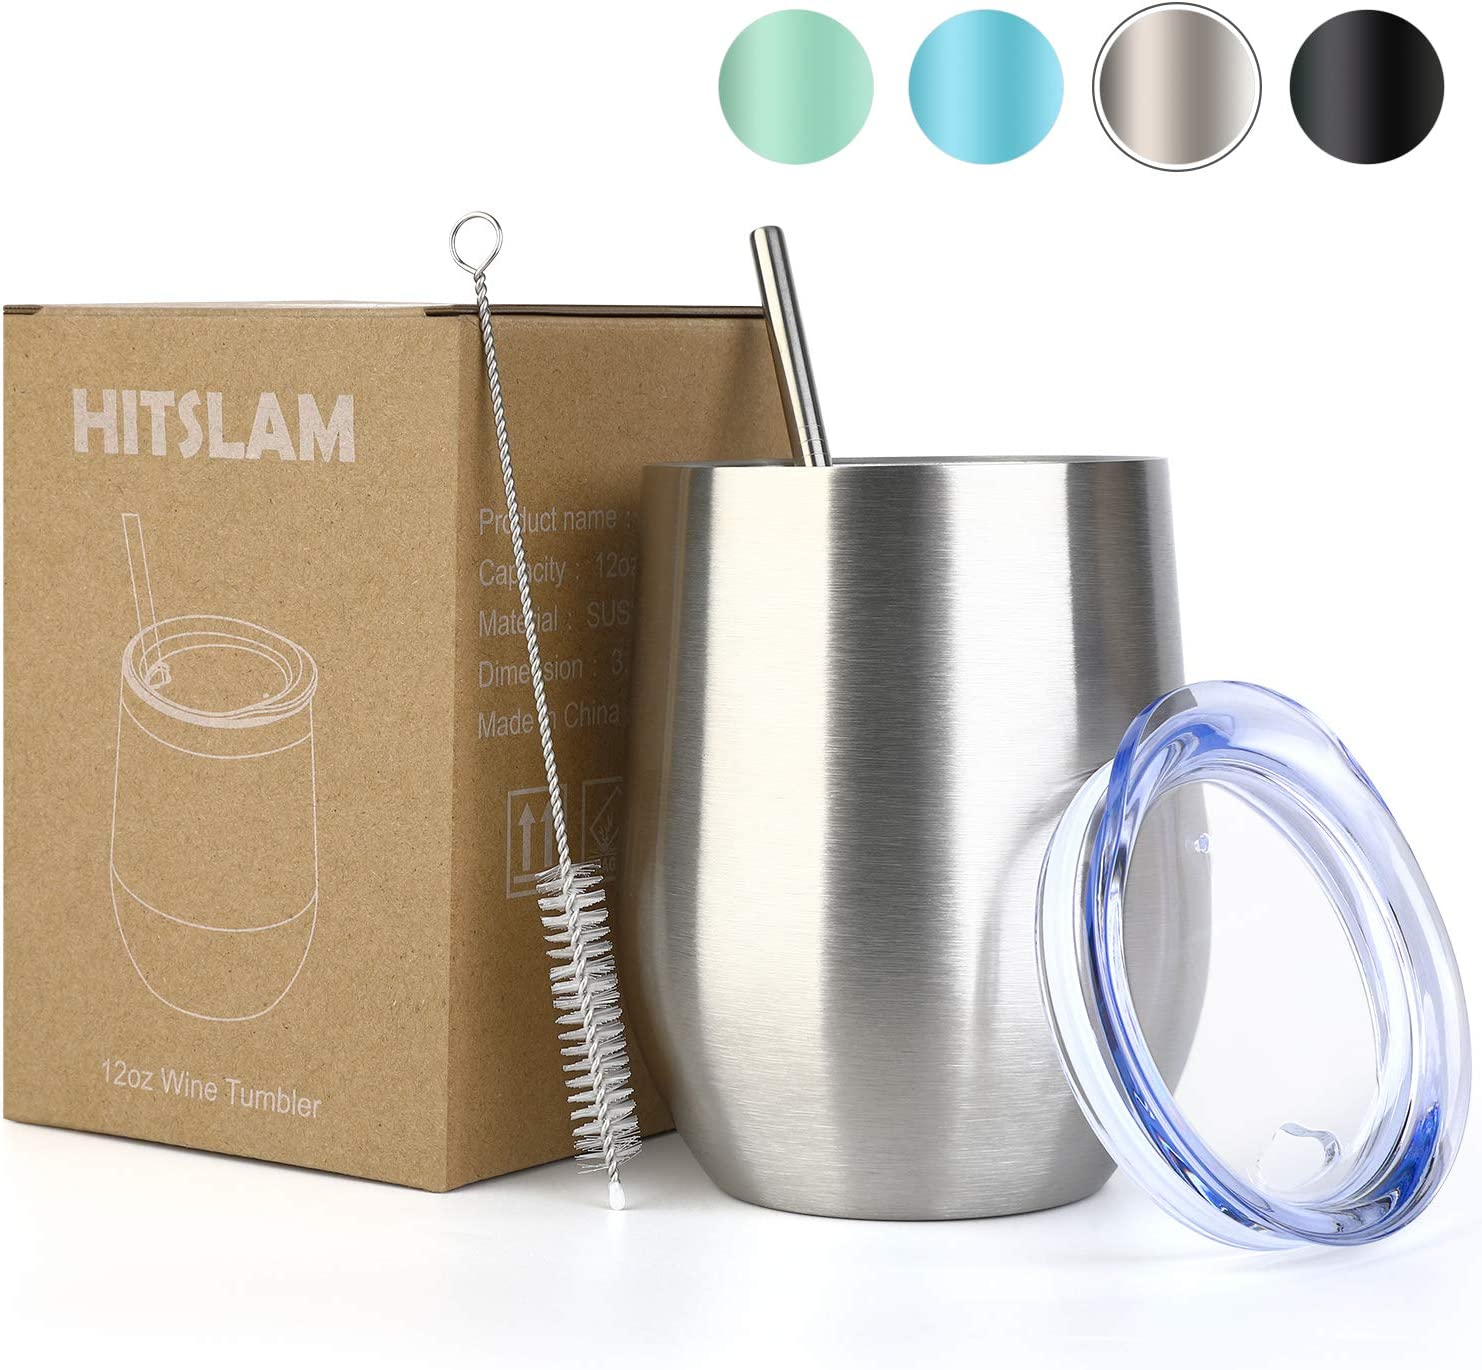 HITSLAM Wine Tumbler 12oz Stainless Steel Tumbler Vacuum Insulated Wine Glass Double Wall Coffee Mug for Champaign, Beer, Office use includes Straw Lid, Straw, Cleaning Brush (Silver)